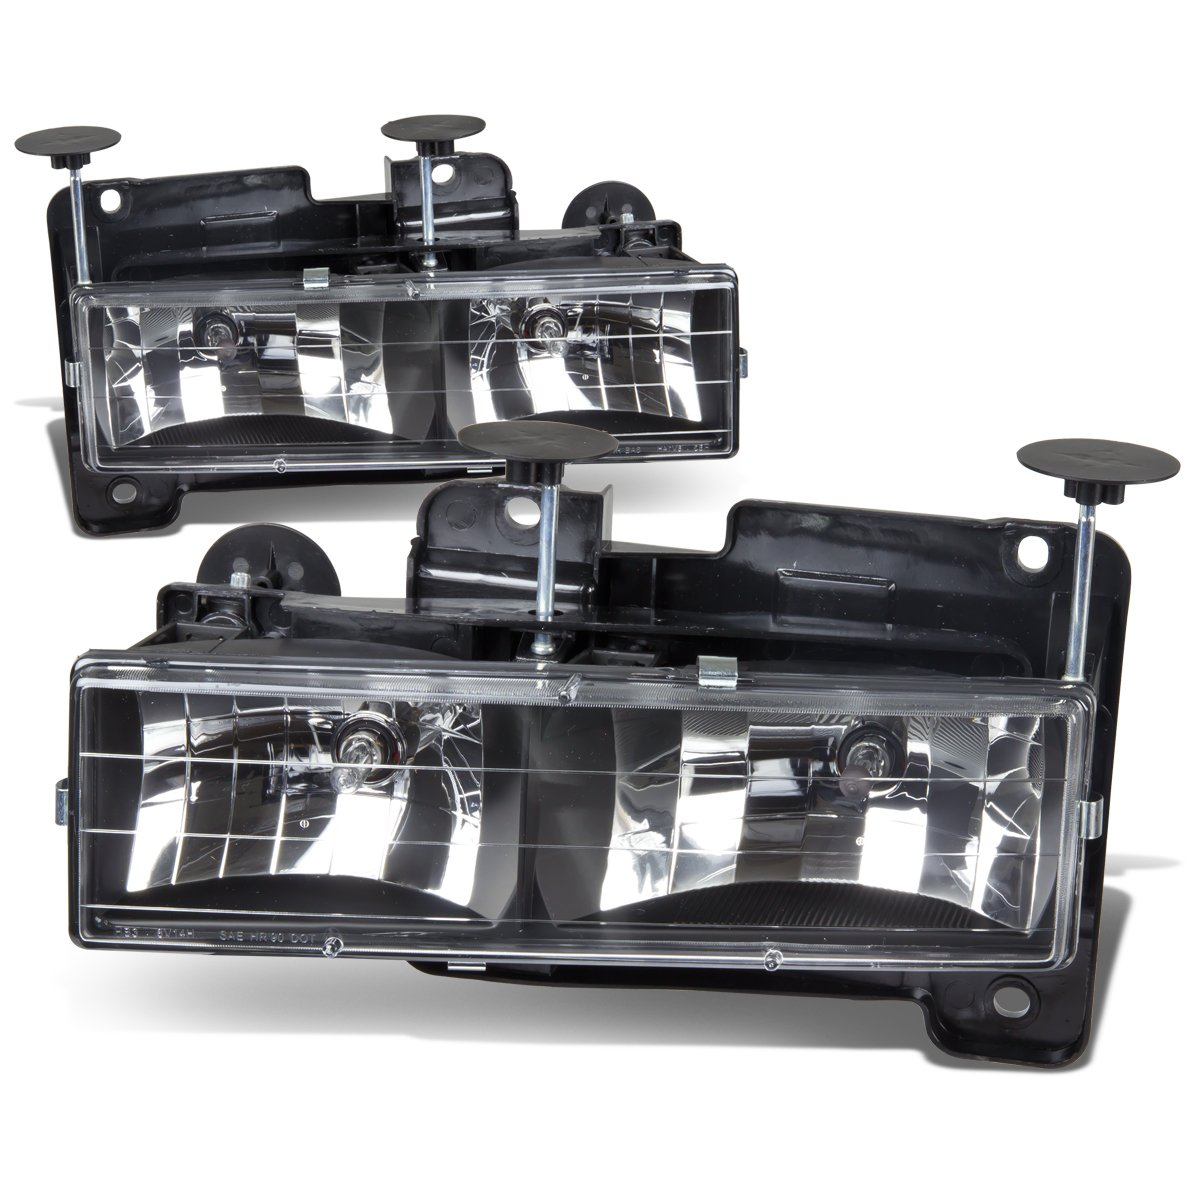 For Chevy/GMC C/K-Series 4th Gen GMT400 2-PC Lamps Black Housing Headlight/Bumper Lights Kit